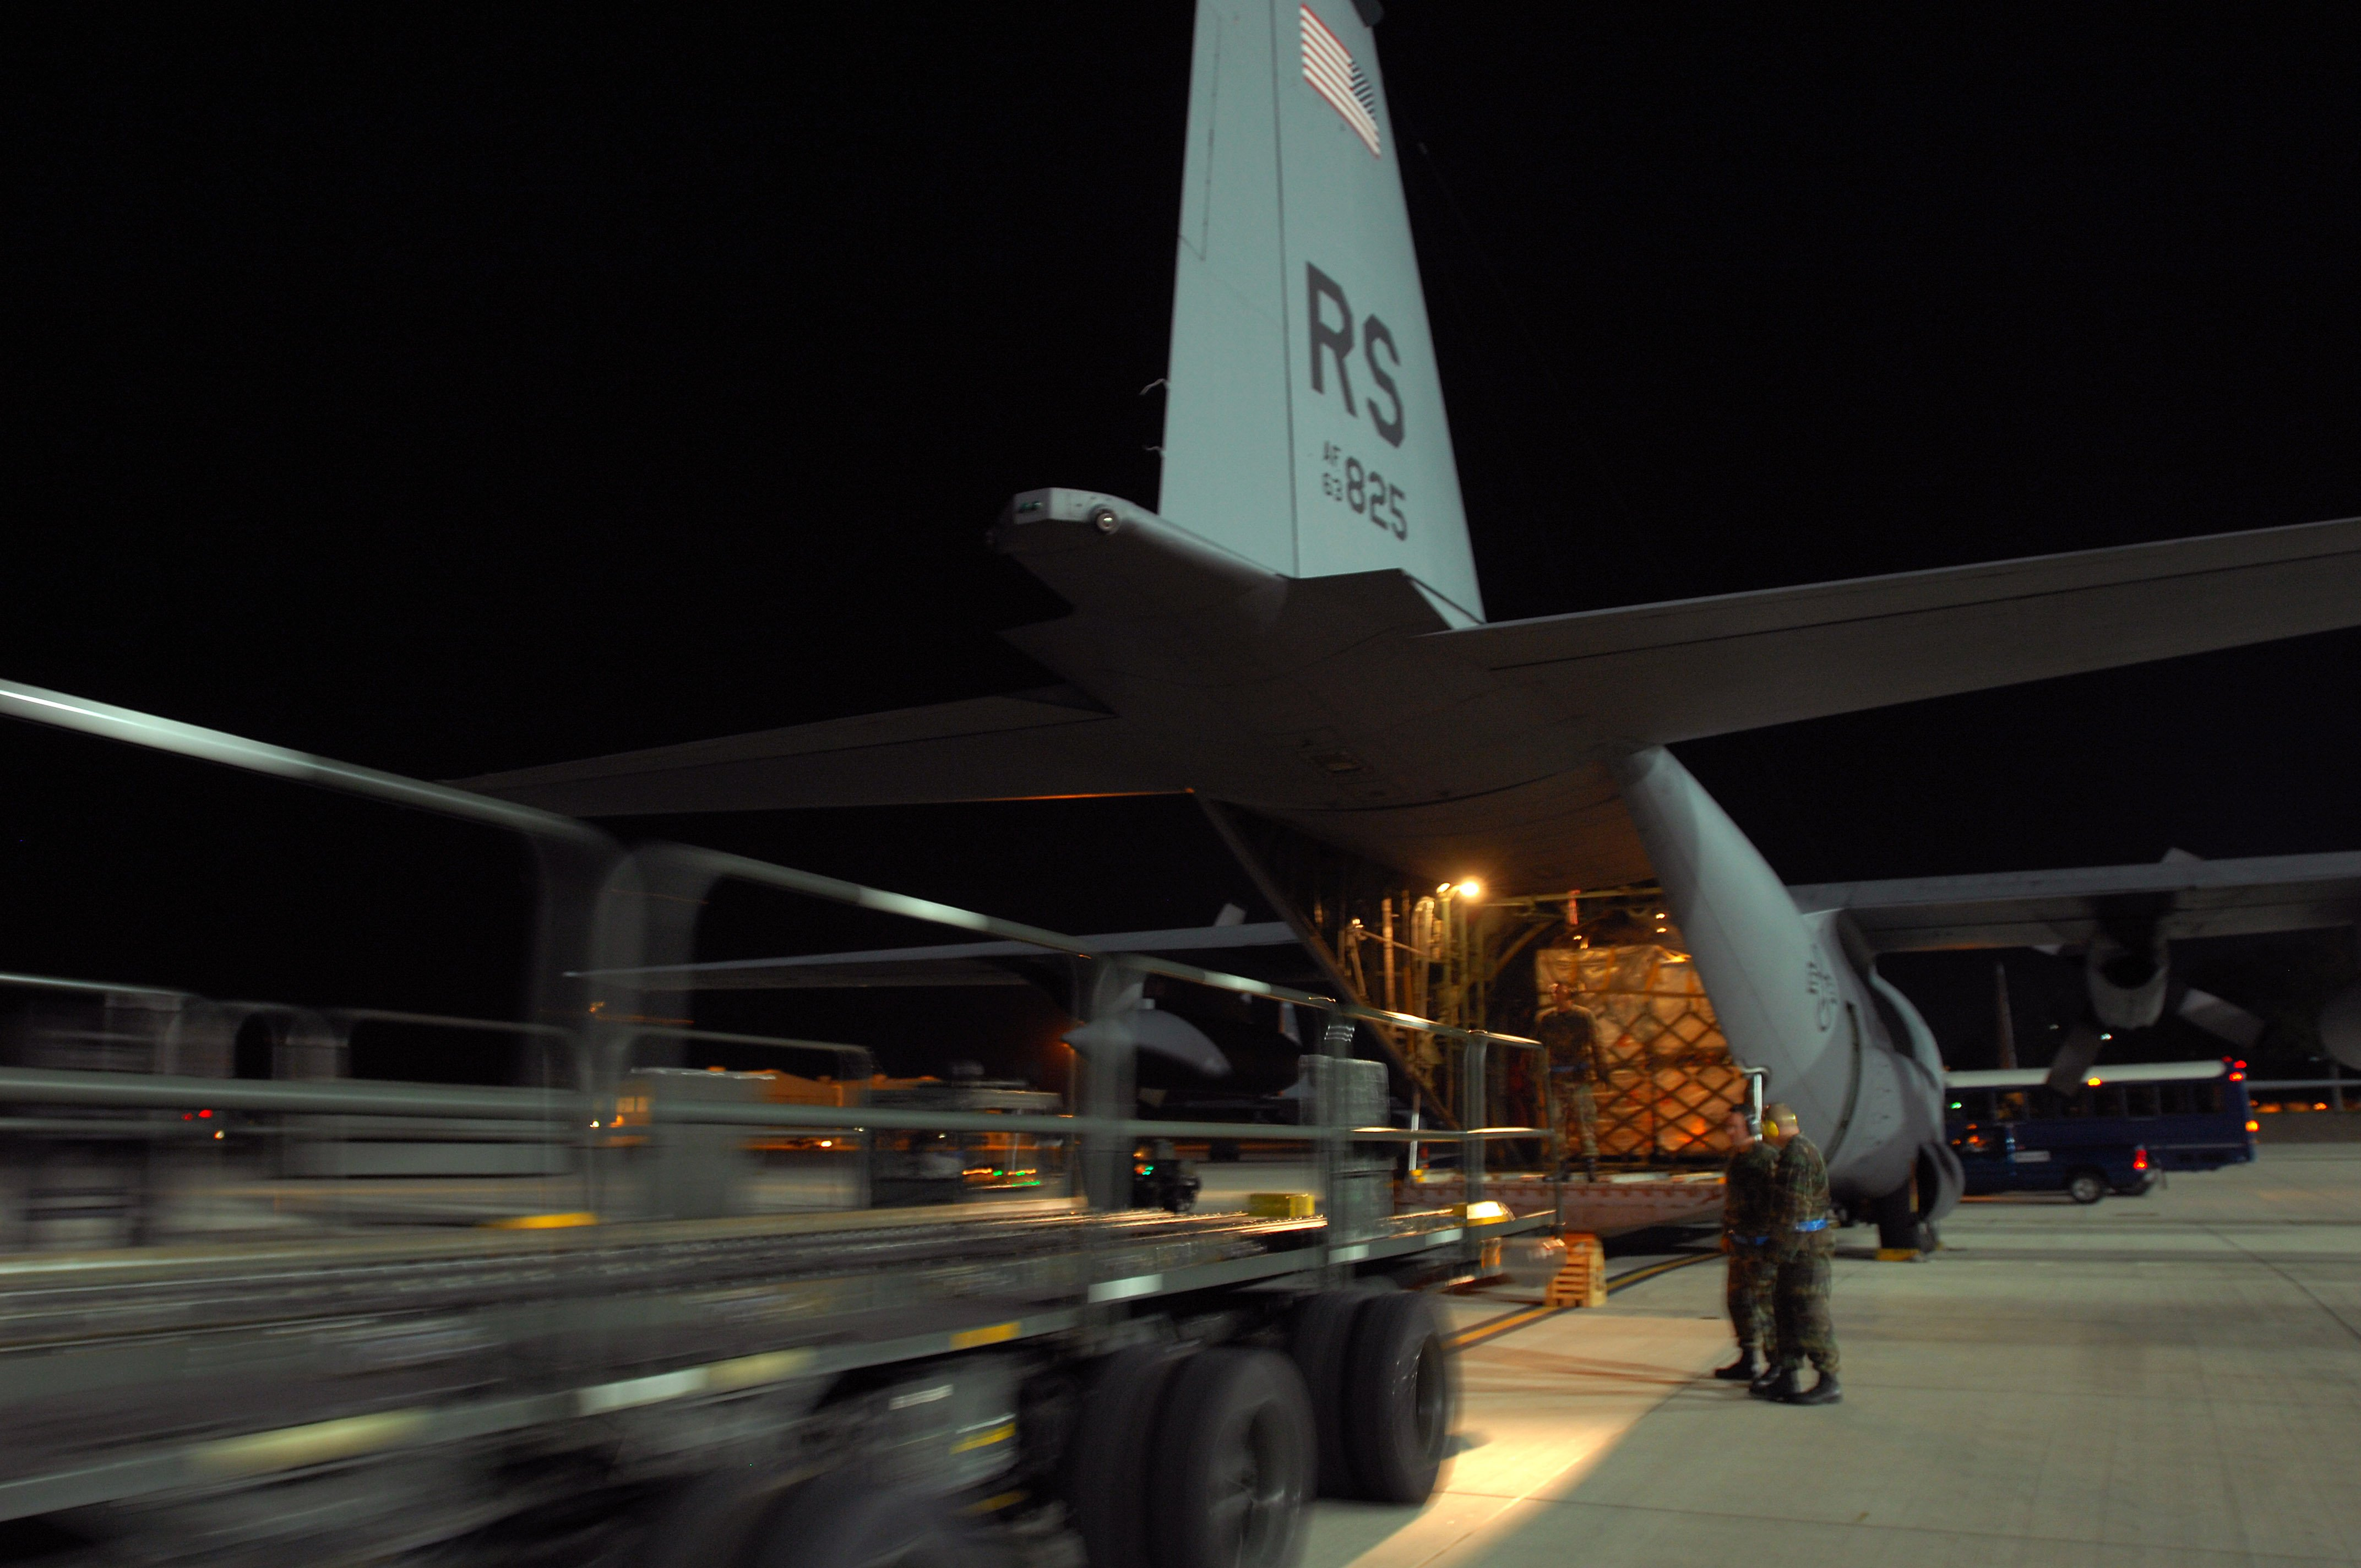 A USAF C-130 is loaded with humanitarian supplies for the Republic of Georgia at Ramstein AFB, Germany, on 14 August 2008.  Photo courtesy US Department of Defense.